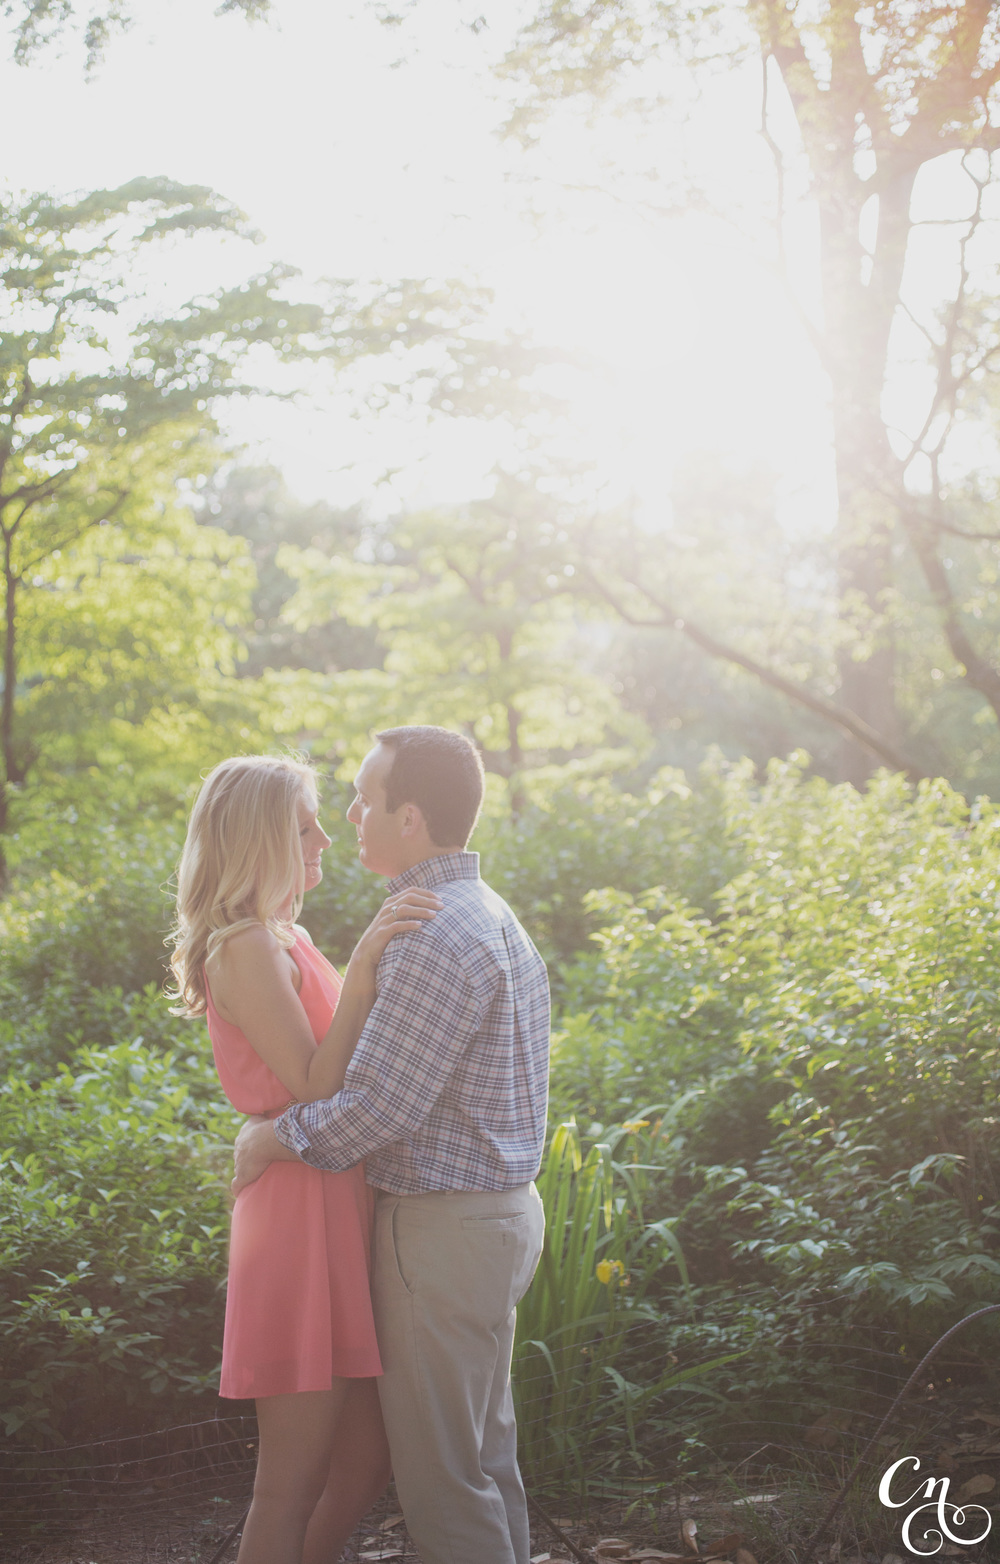 CNPKatieEngagement_7748_WM.jpg